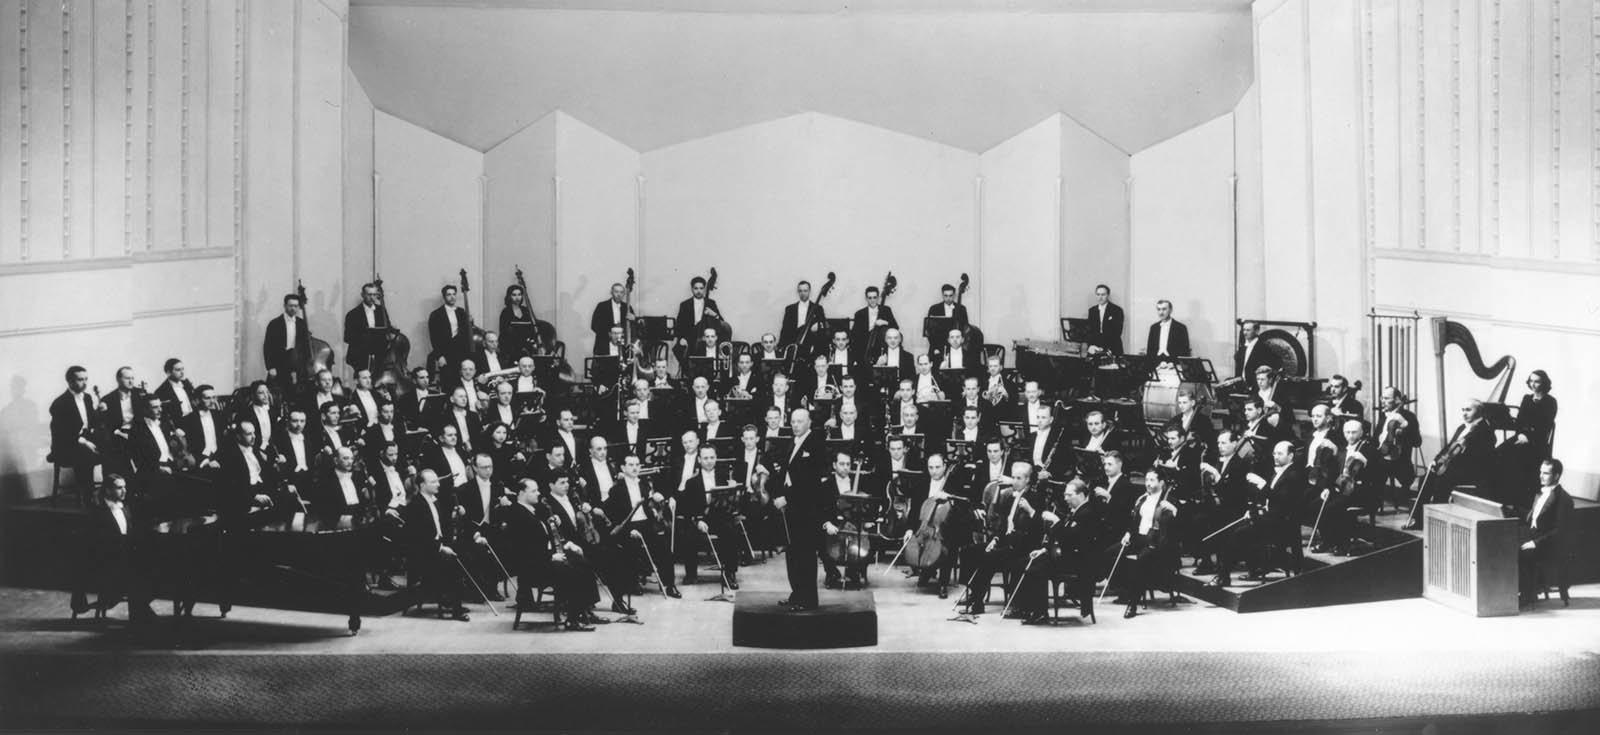 The Cleveland Orchestra and Director George Szell pose in Severance Hall. Unknown photographer, 1946.